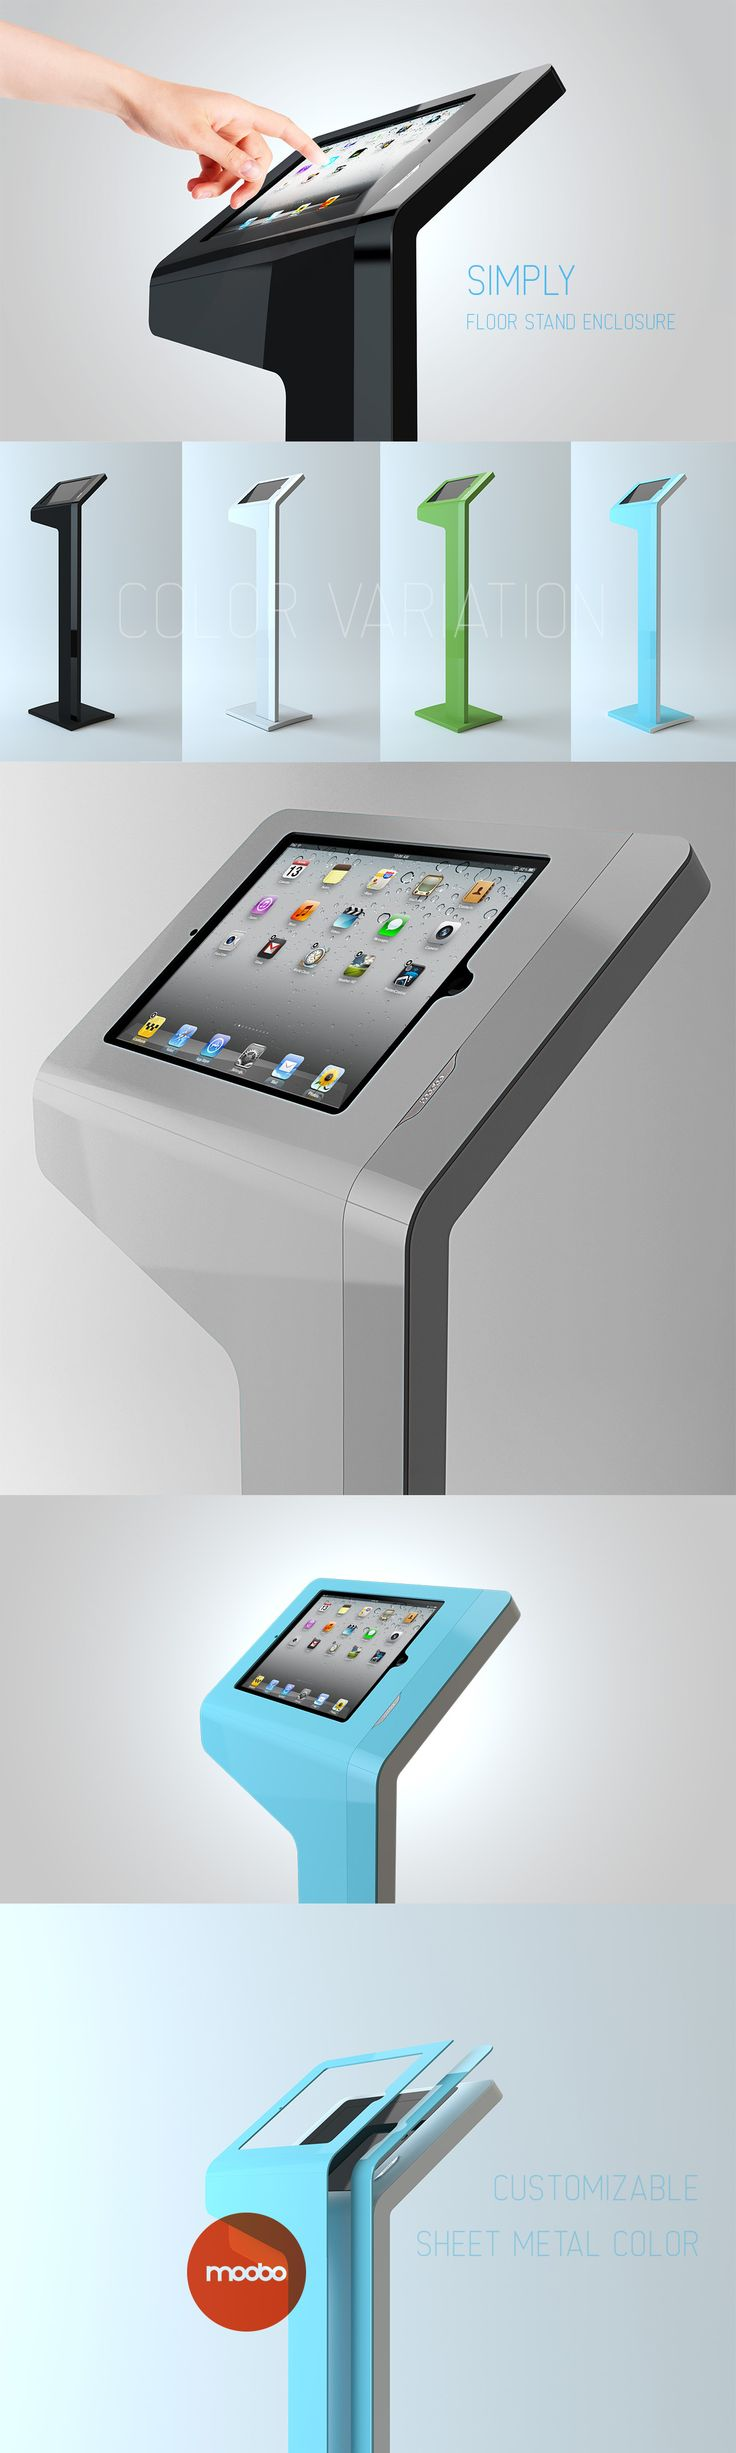 Simply | Tablet enclosure on Behance